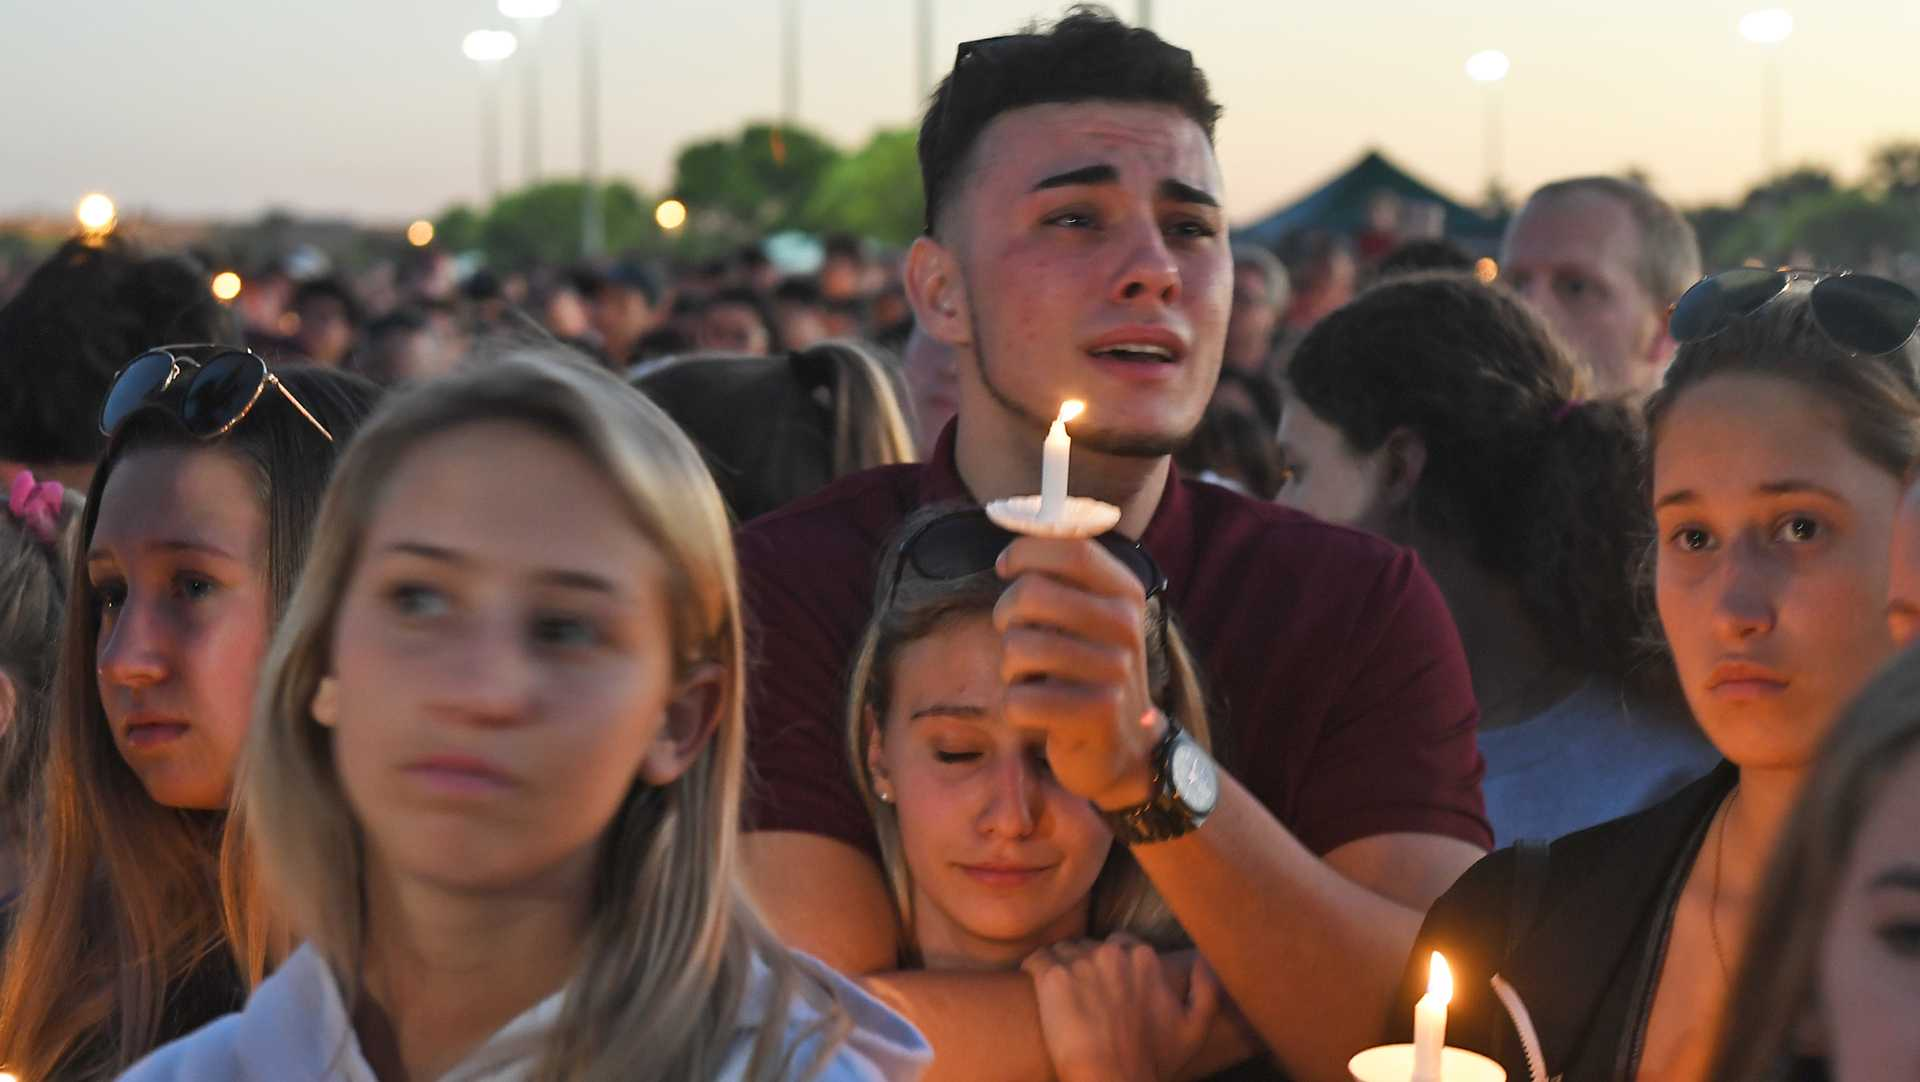 Mourners gather at a vigil that was held for the victims of the mass shooting at Marjory Stoneman Douglas High School in Parkland, Fla., on Thursday, Feb. 15, 2018. (Jim Rassol/Sun Sentinel/TNS)